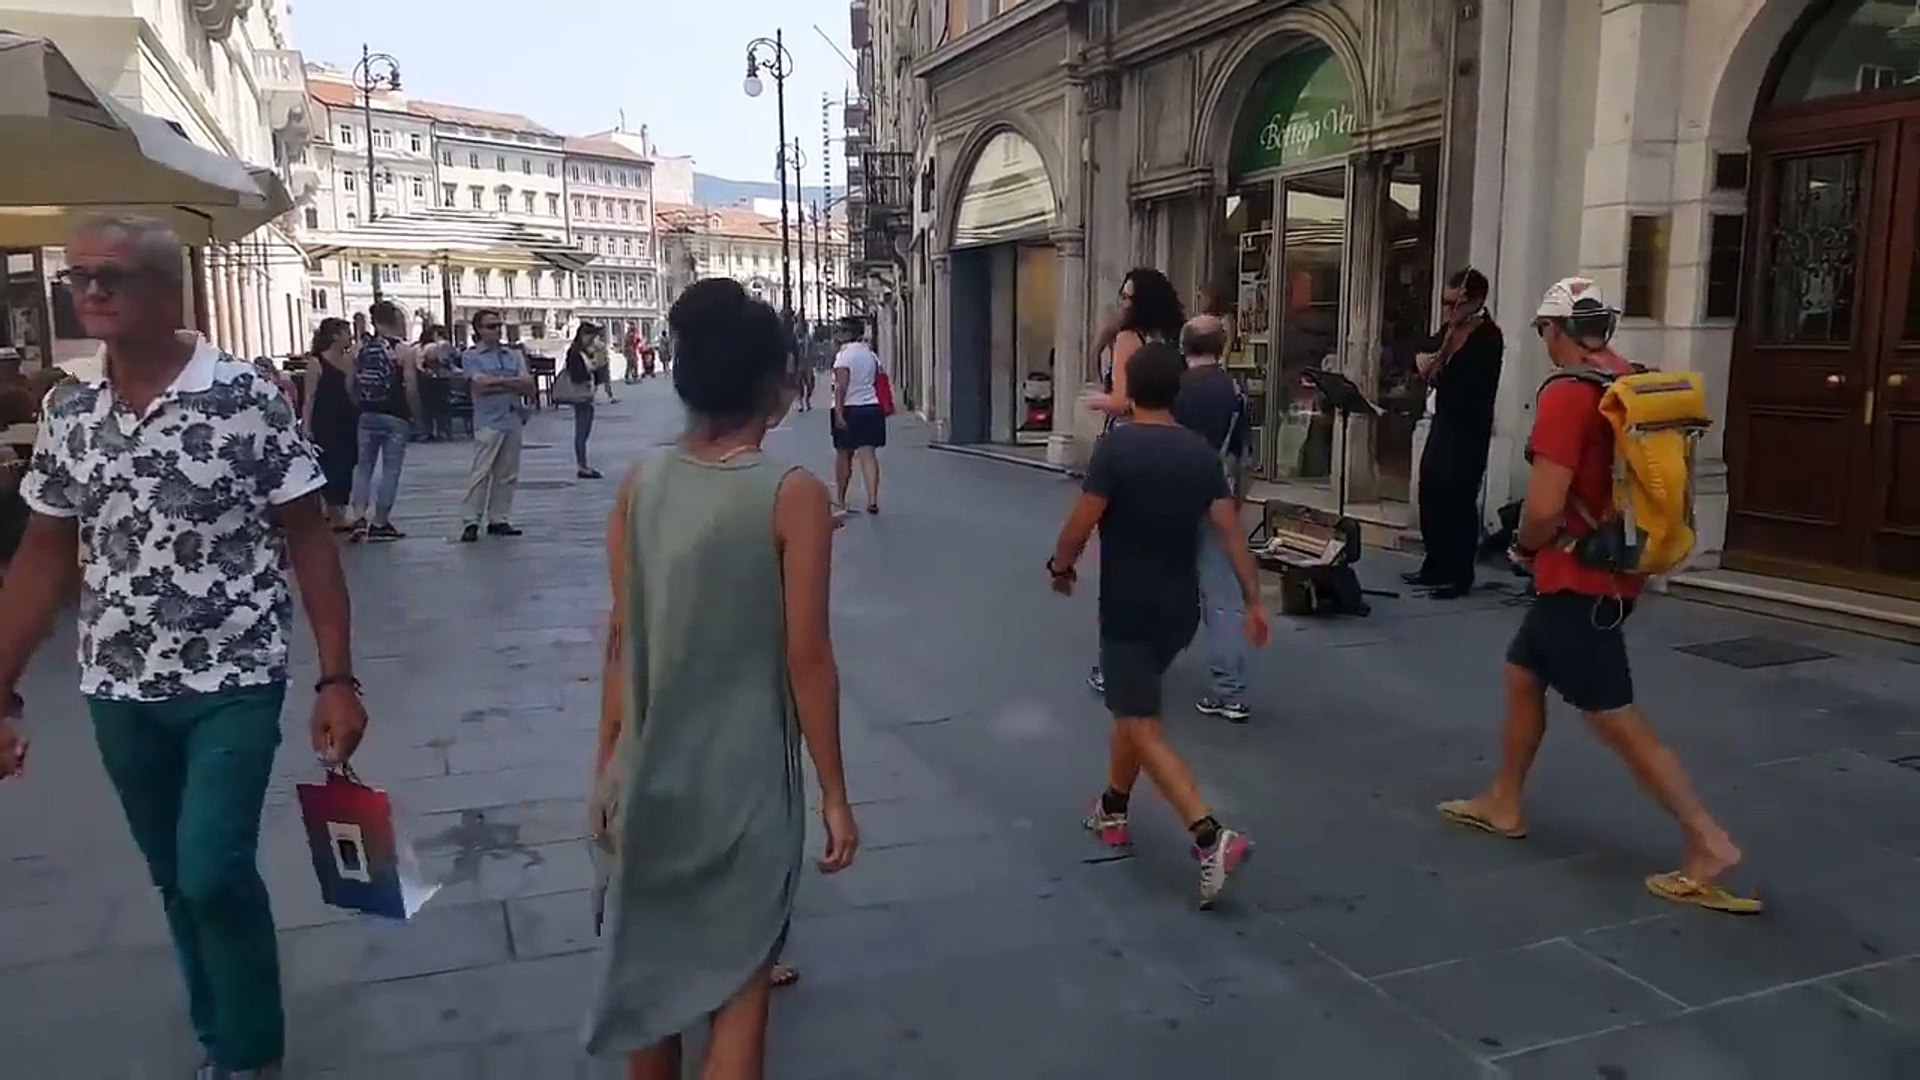 The ballerina could not resist the melody of a street musician in Italy